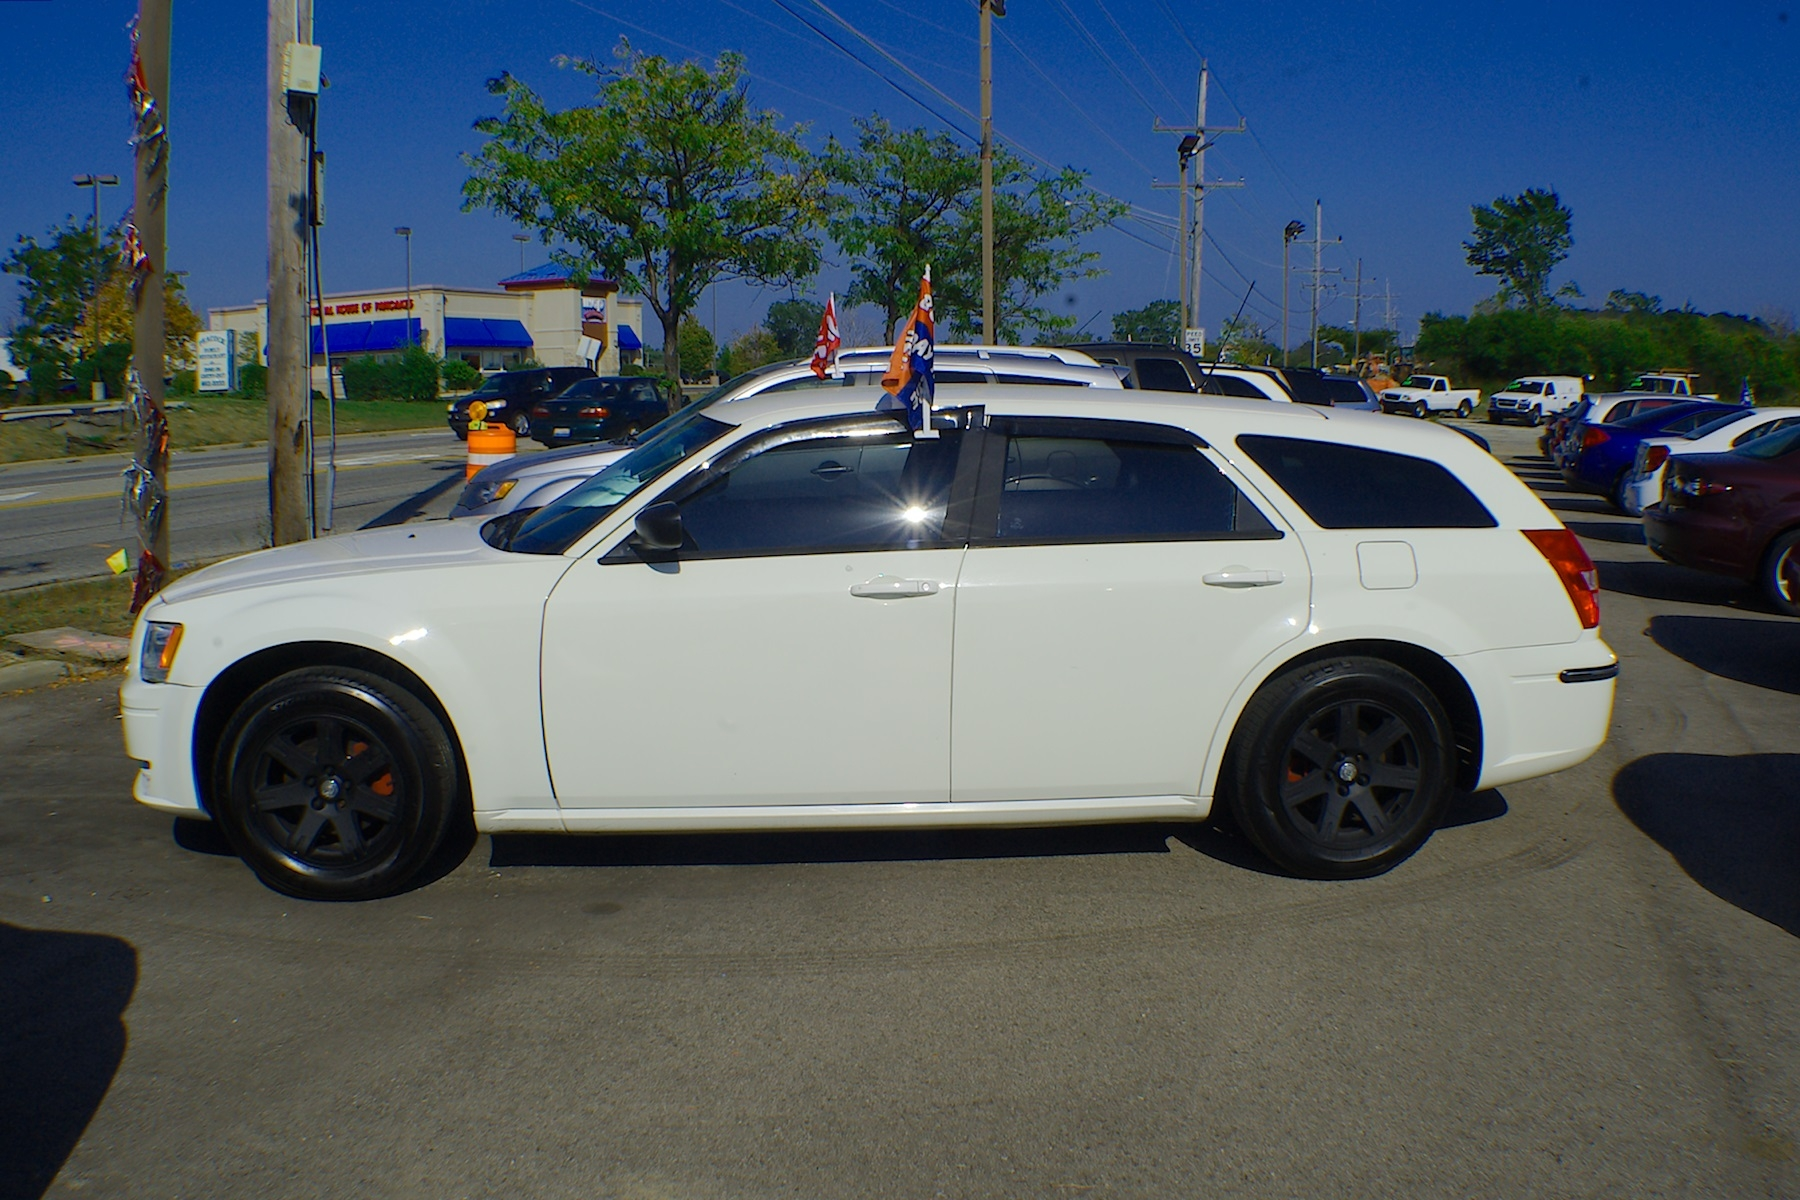 2008 Dodge Magnum White Used Sedan Wagon Sale Antioch Zion Waukegan Lake County Illinois